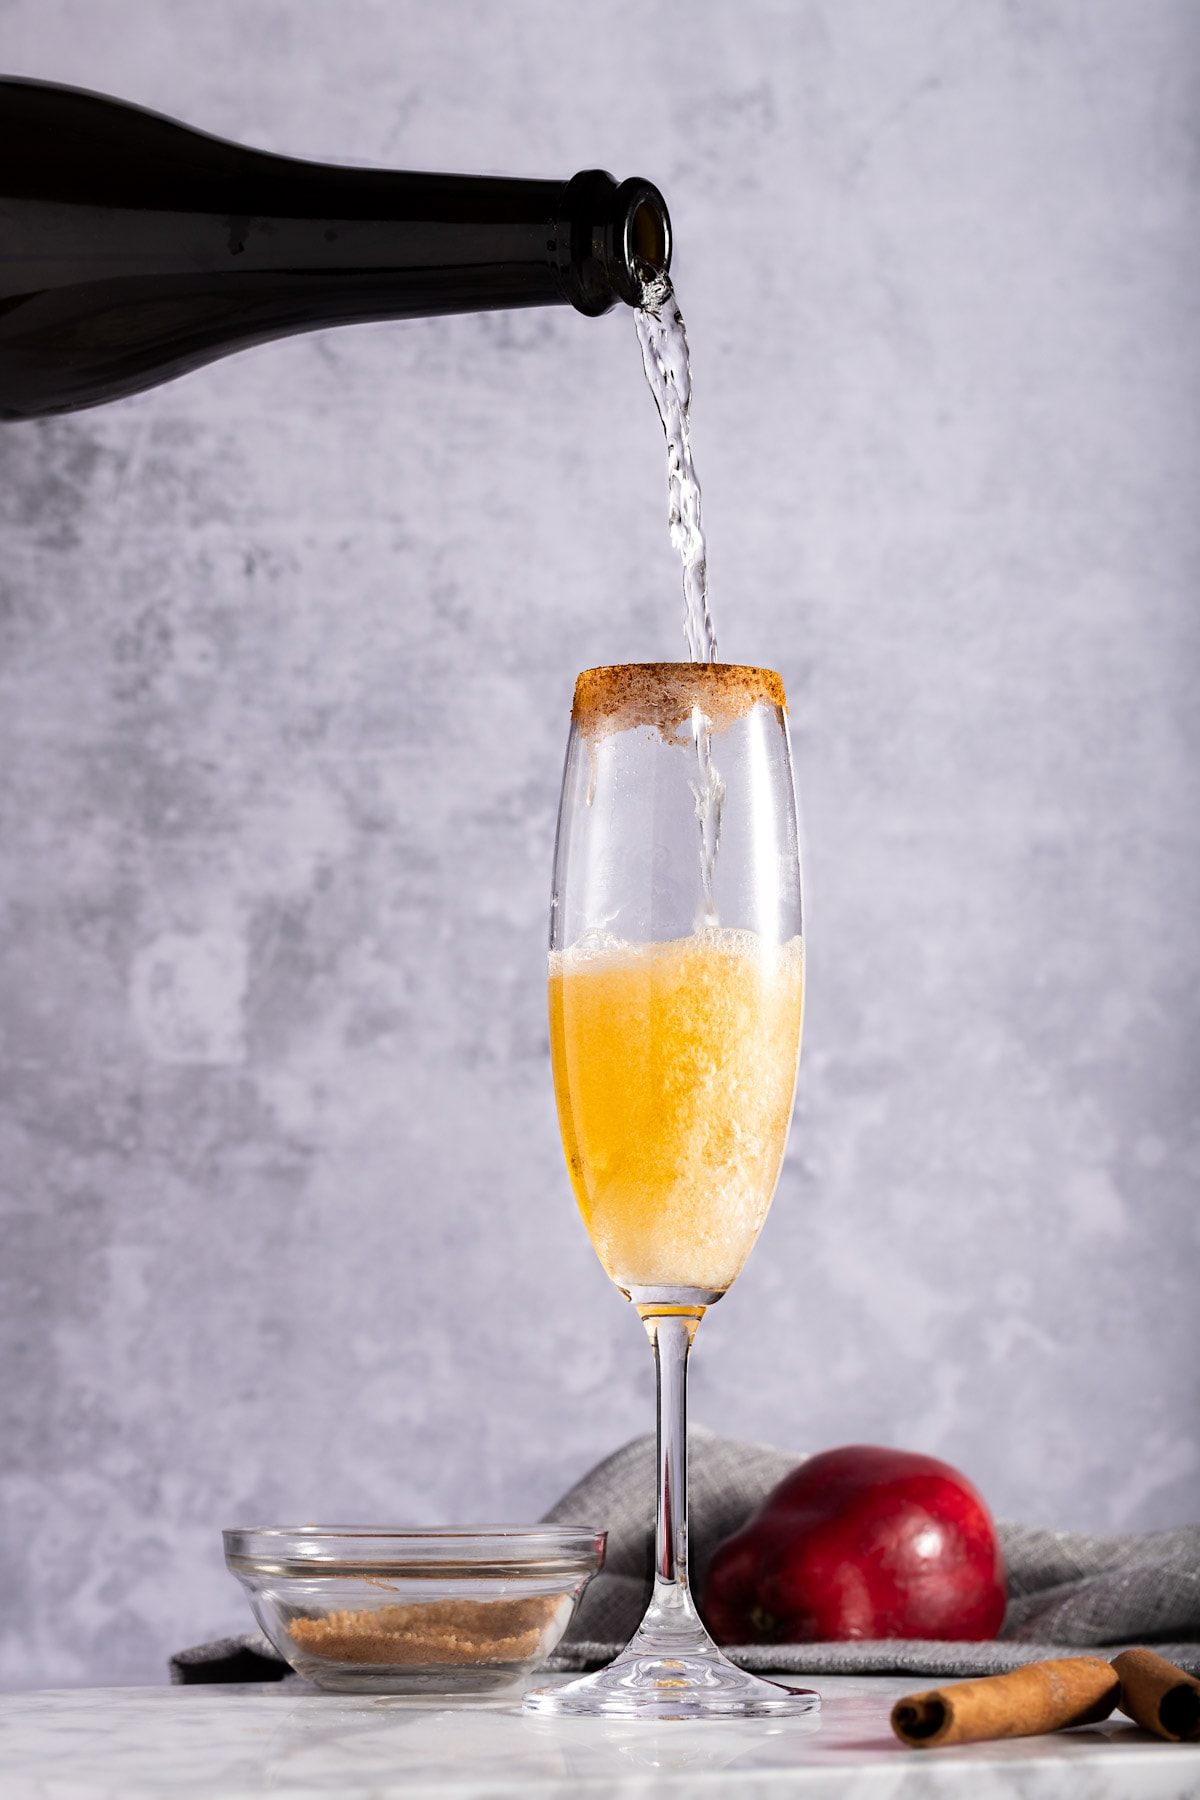 Champagne being poured into the a mimosa glass.